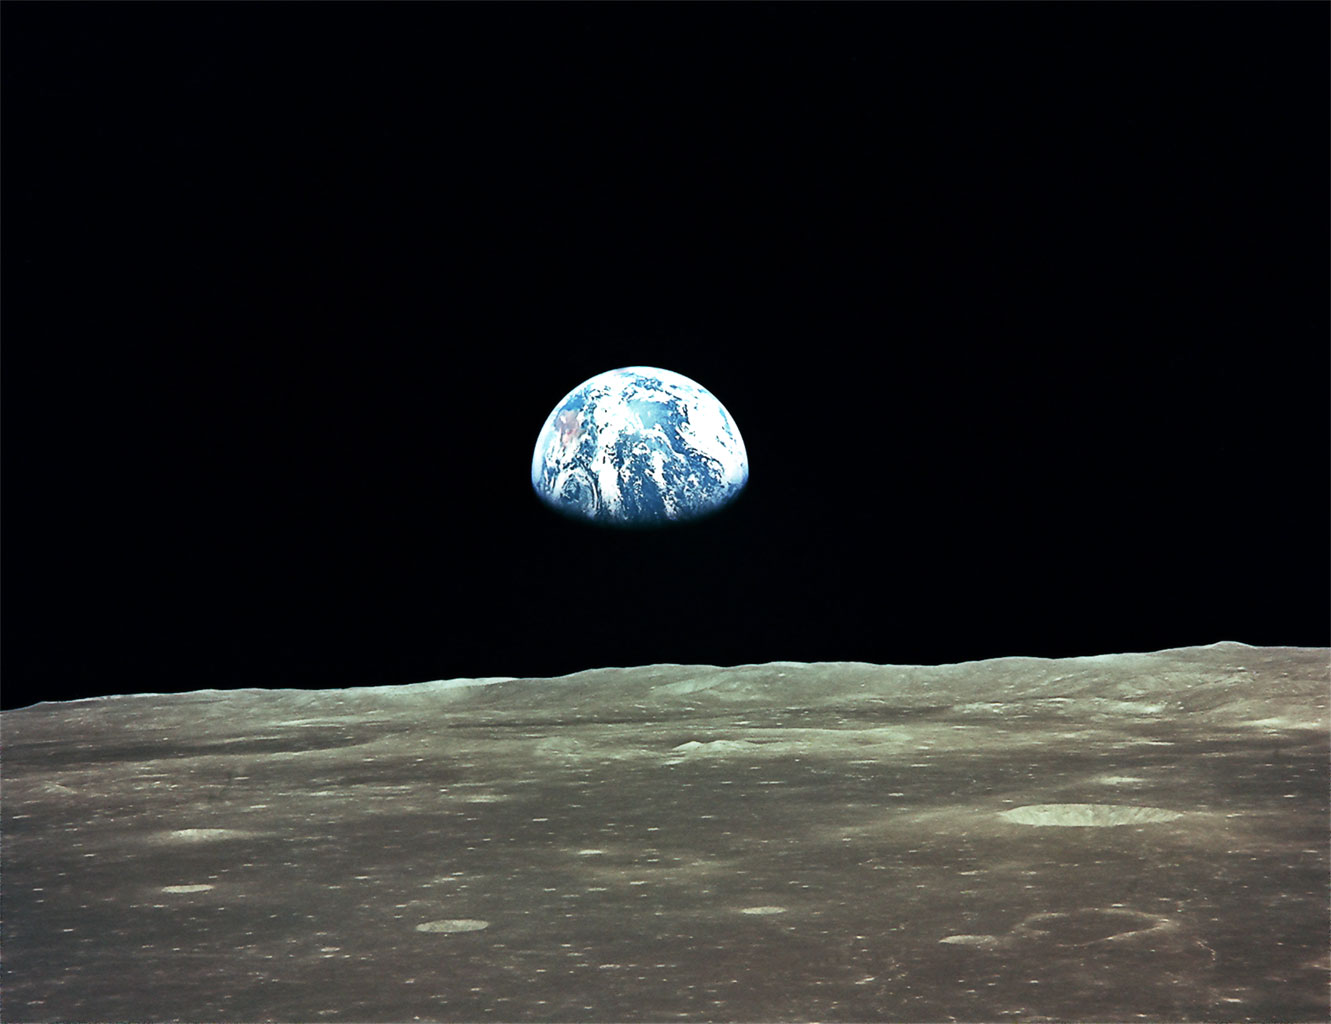 apollo 11 earthrise photo earth rise photo | earthrise | as11-44